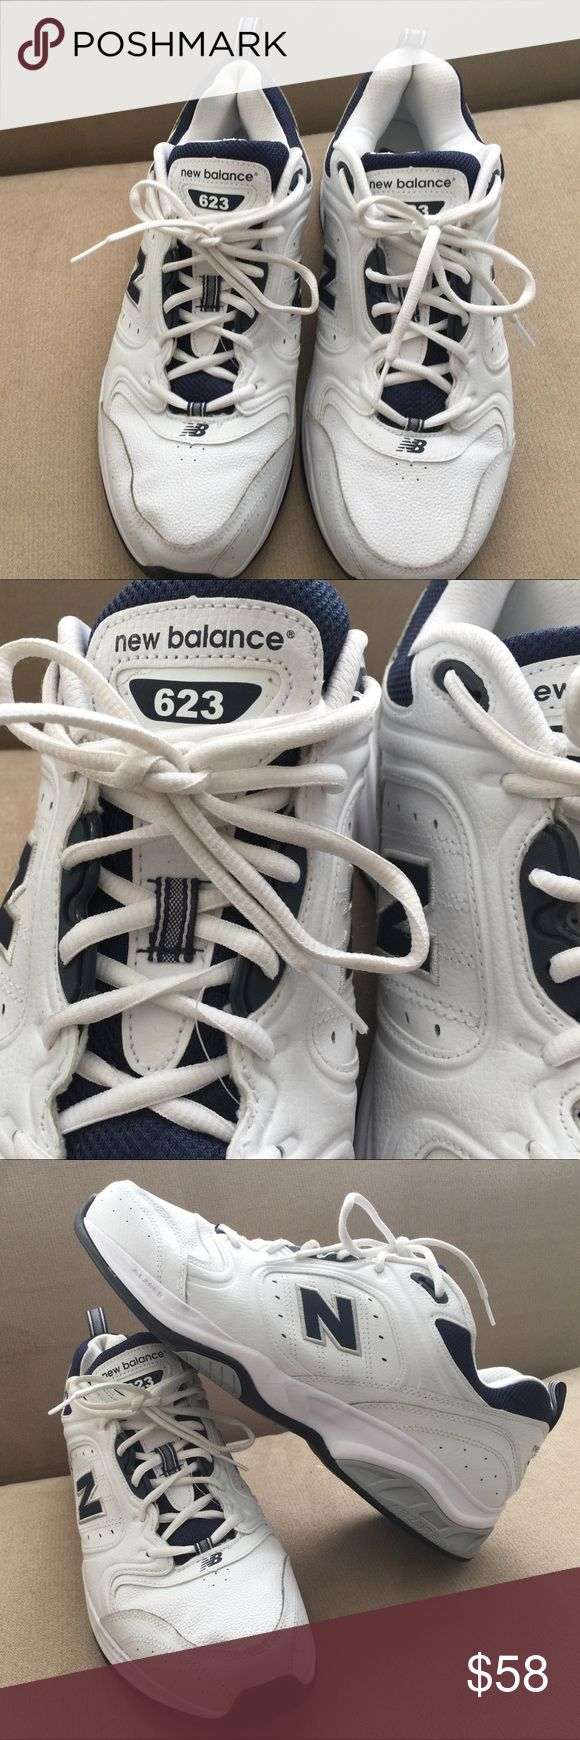 New Balance 623 ABZTRB Training size 14 Brand New No Box. White Color. Training Shoes, man's size 14. New Balance Shoes Athletic Shoes